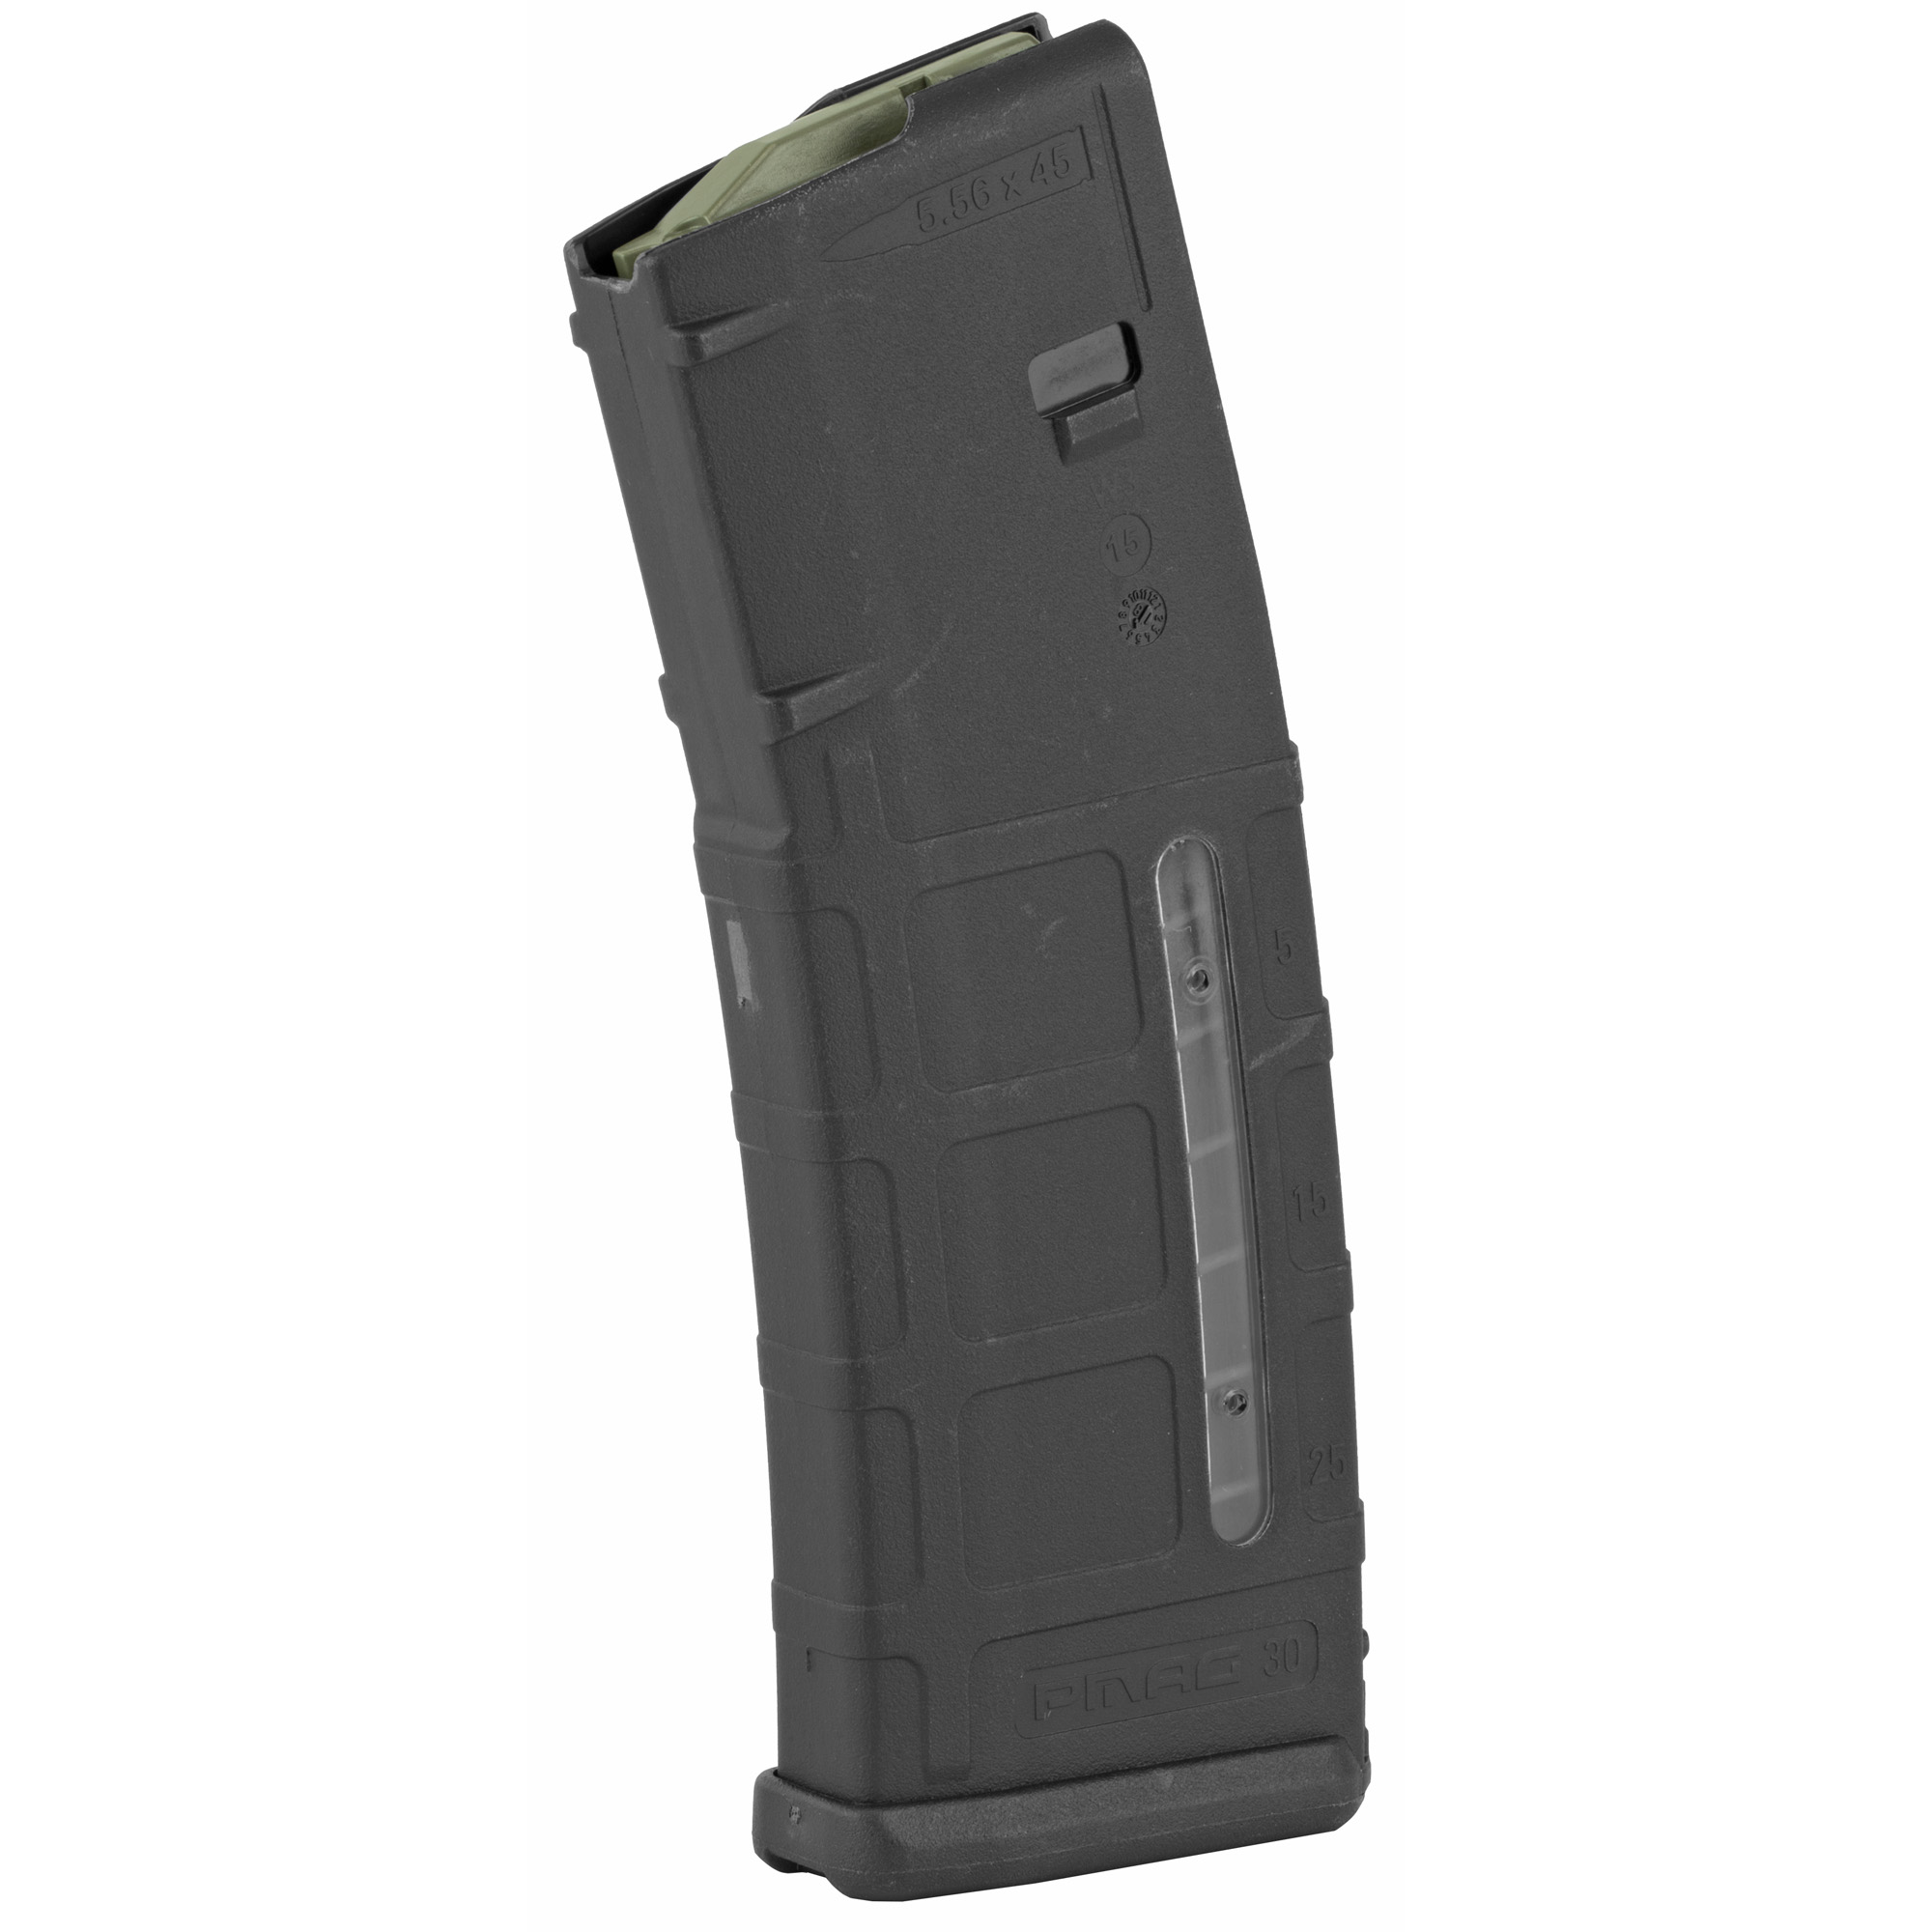 """The PMAG 30 AR/M4 GEN M2 MOE Window is a 30-round 5.56x45 NATO (.223 Remington) AR15/M4 compatible magazine that offers a cost competitive upgrade from the aluminum USGI. It features an impact resistant polymer construction"""" easy to disassemble design with a flared floorplate for positive magazine extraction"""" resilient stainless steel spring for corrosion resistance"""" and an anti-tilt"""" self-lubricating follower for increased reliability."""